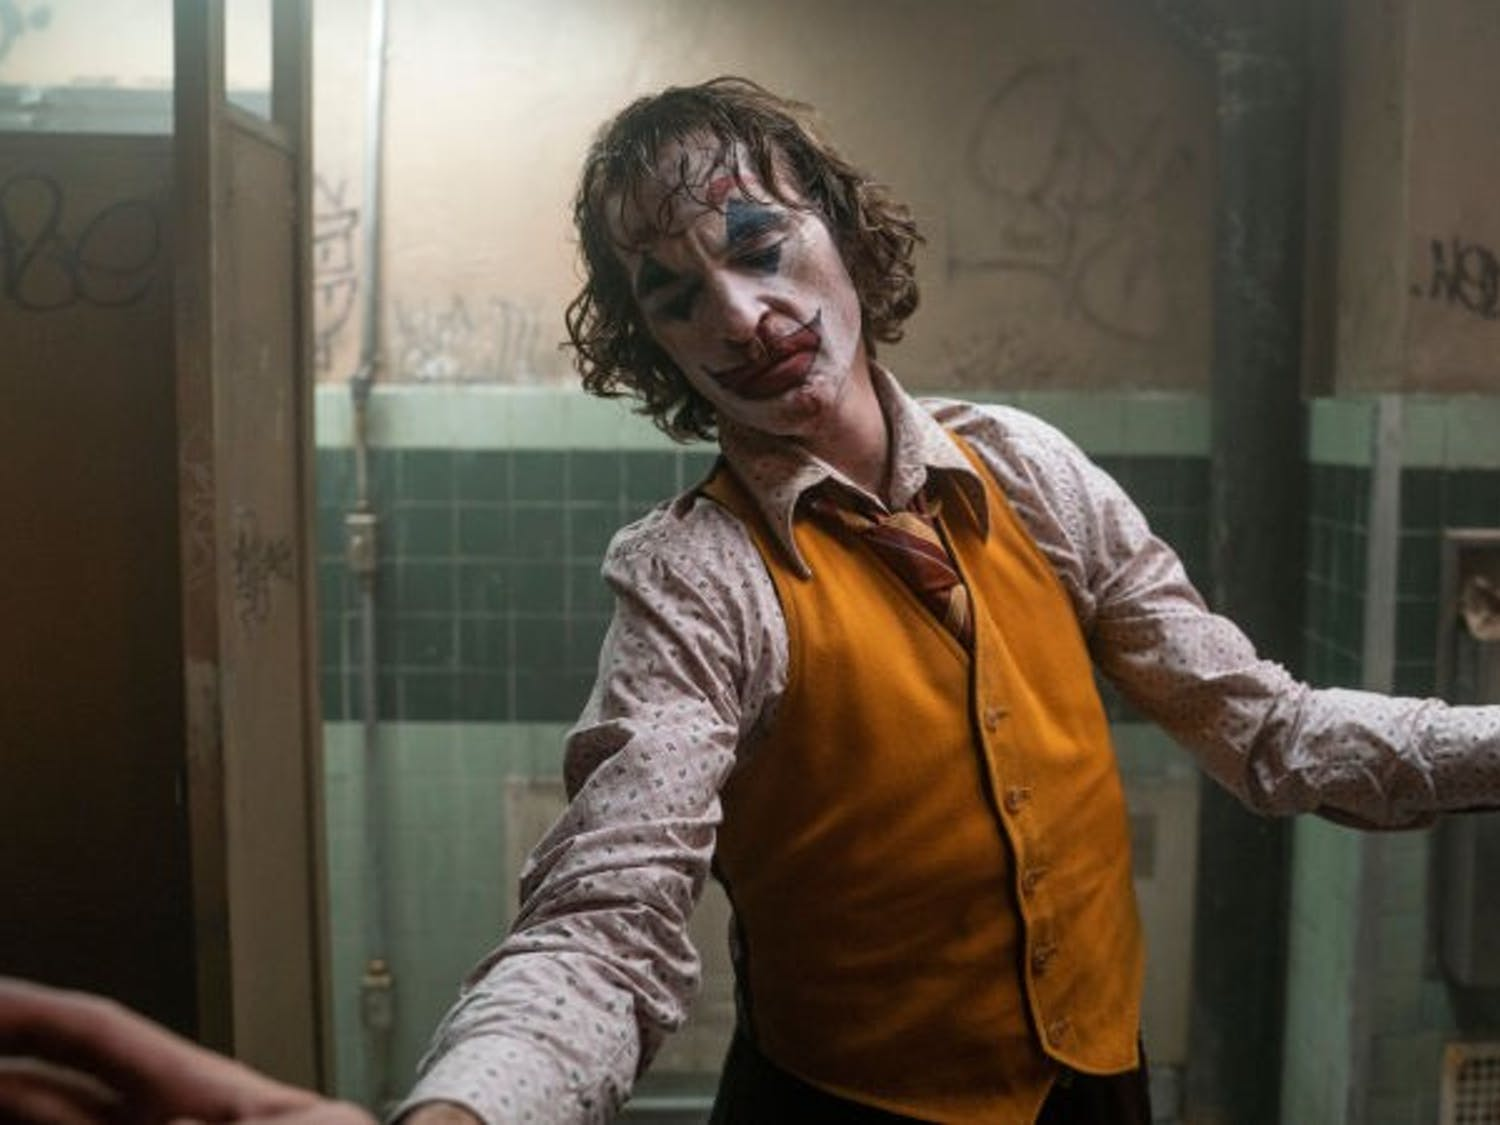 """Joker"" explores the characterization of an iconic villain, creating nuance to the logic behind his disturbing violence and downfall."